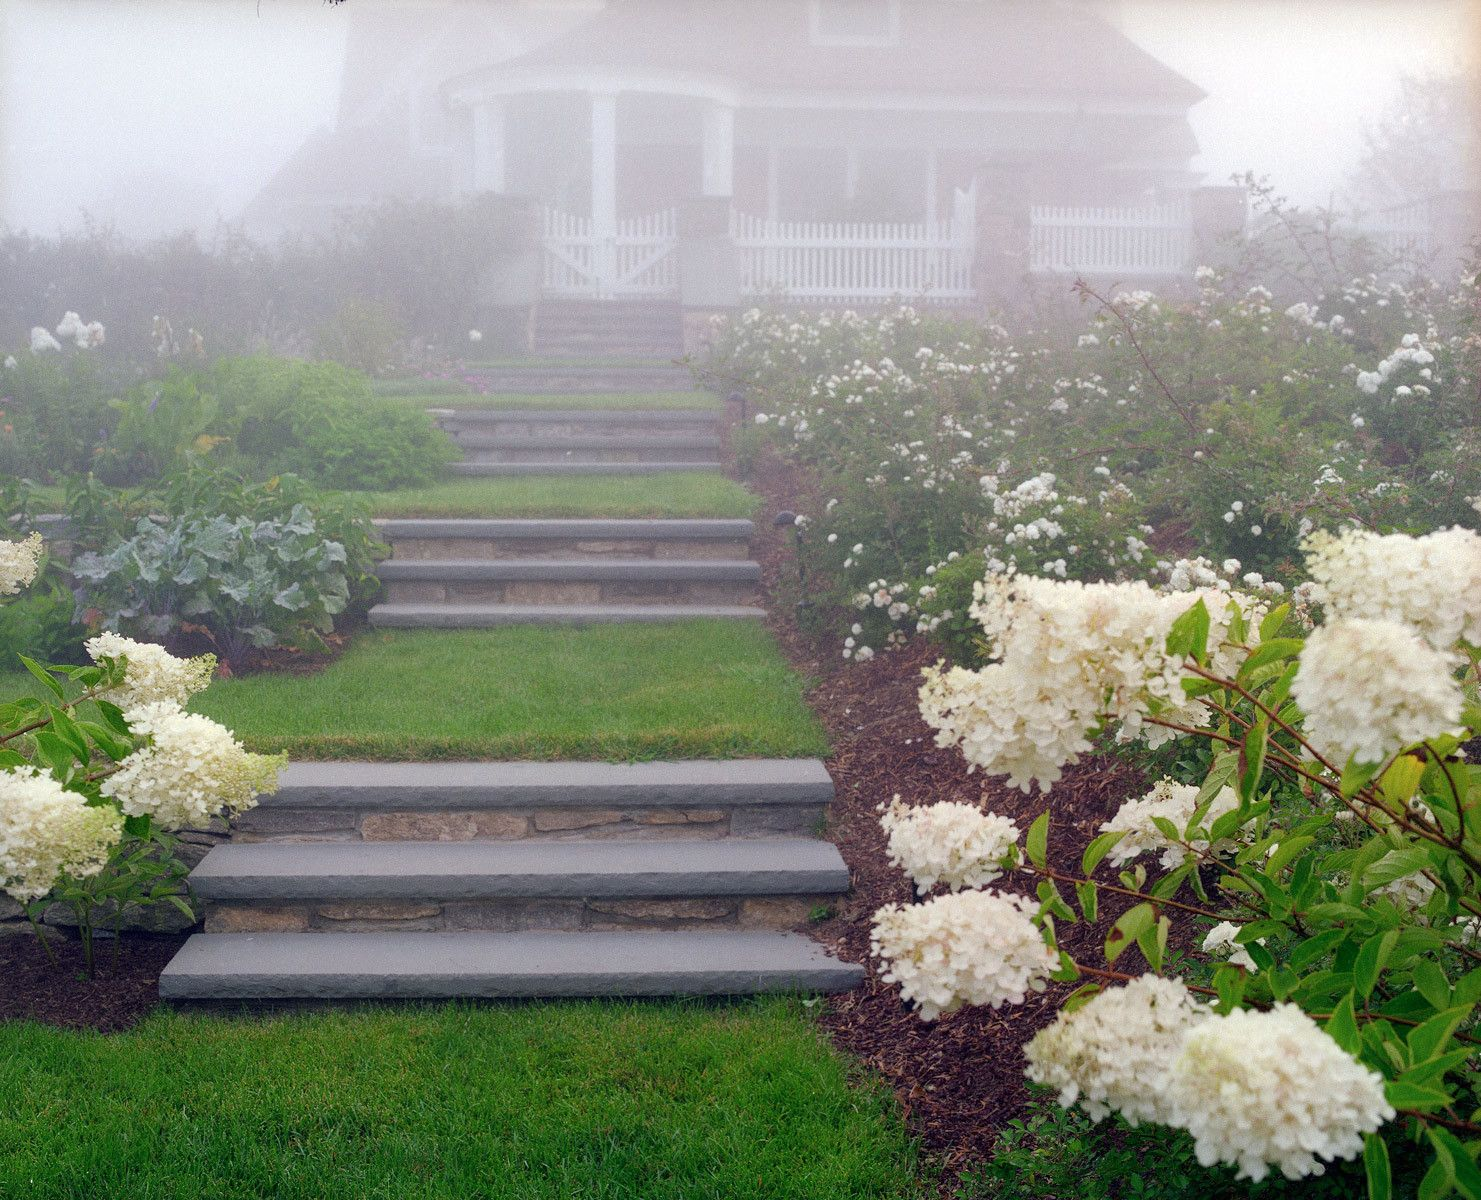 1stairway_in_fog_up_to_house